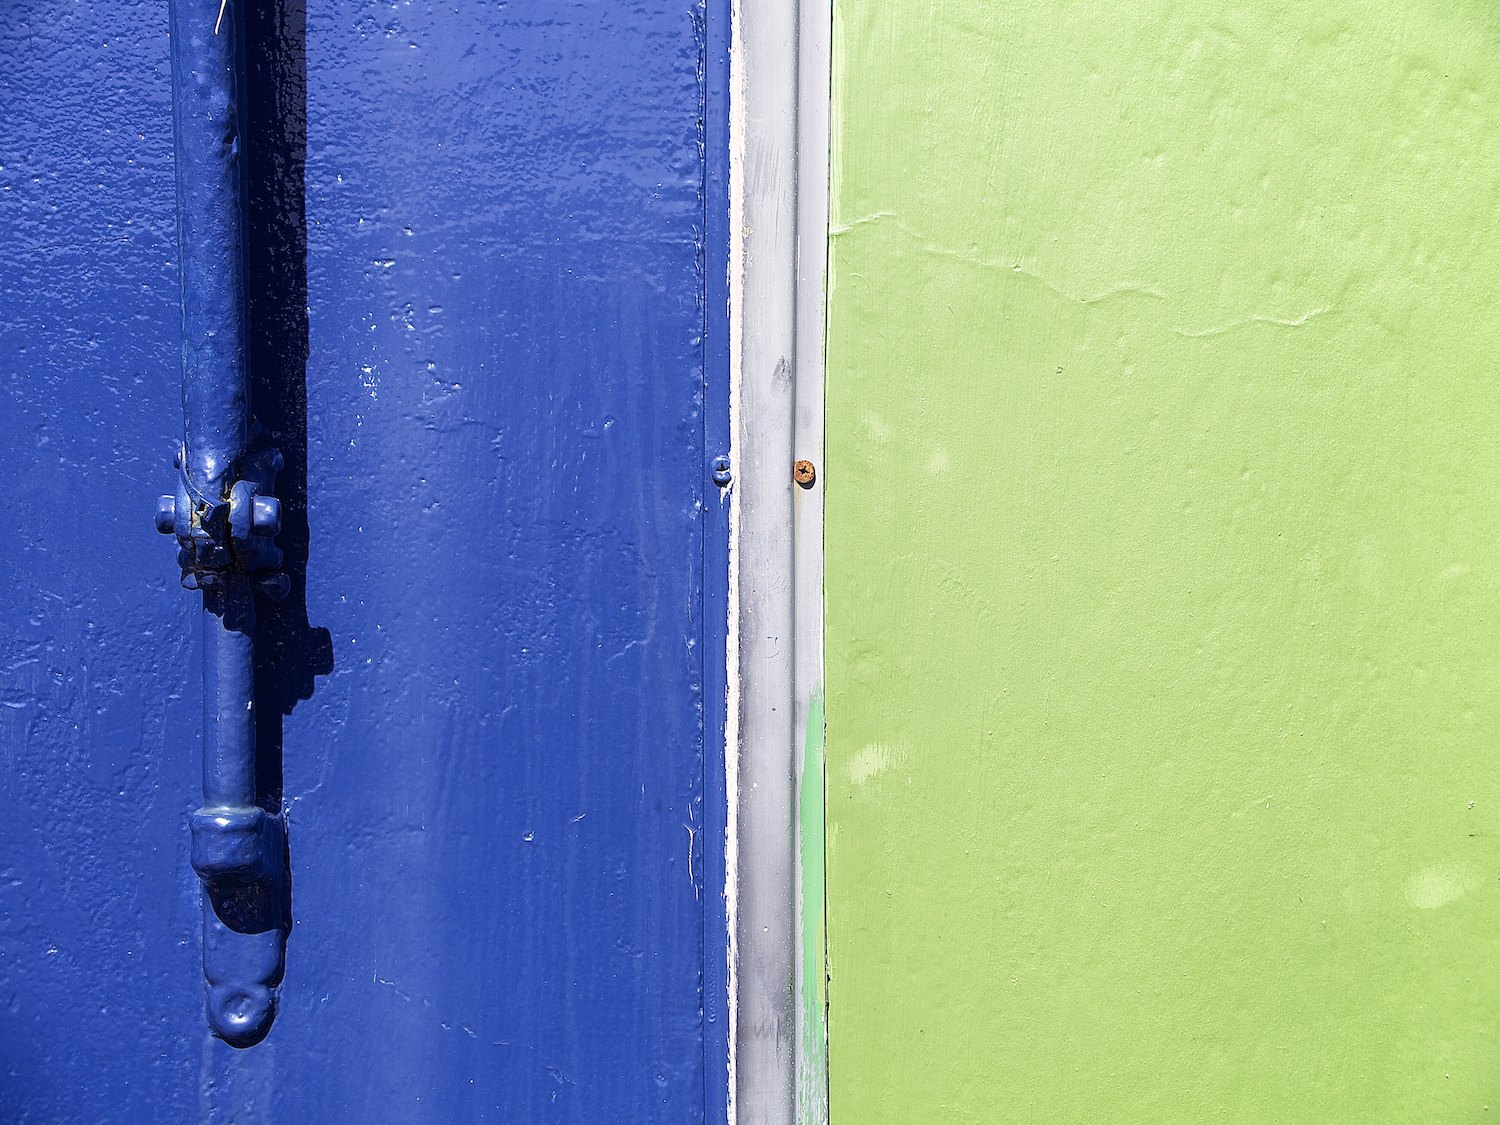 Christopher-Swan-Mull-Tobermory-Colours-abstract 92014-04-18.jpg